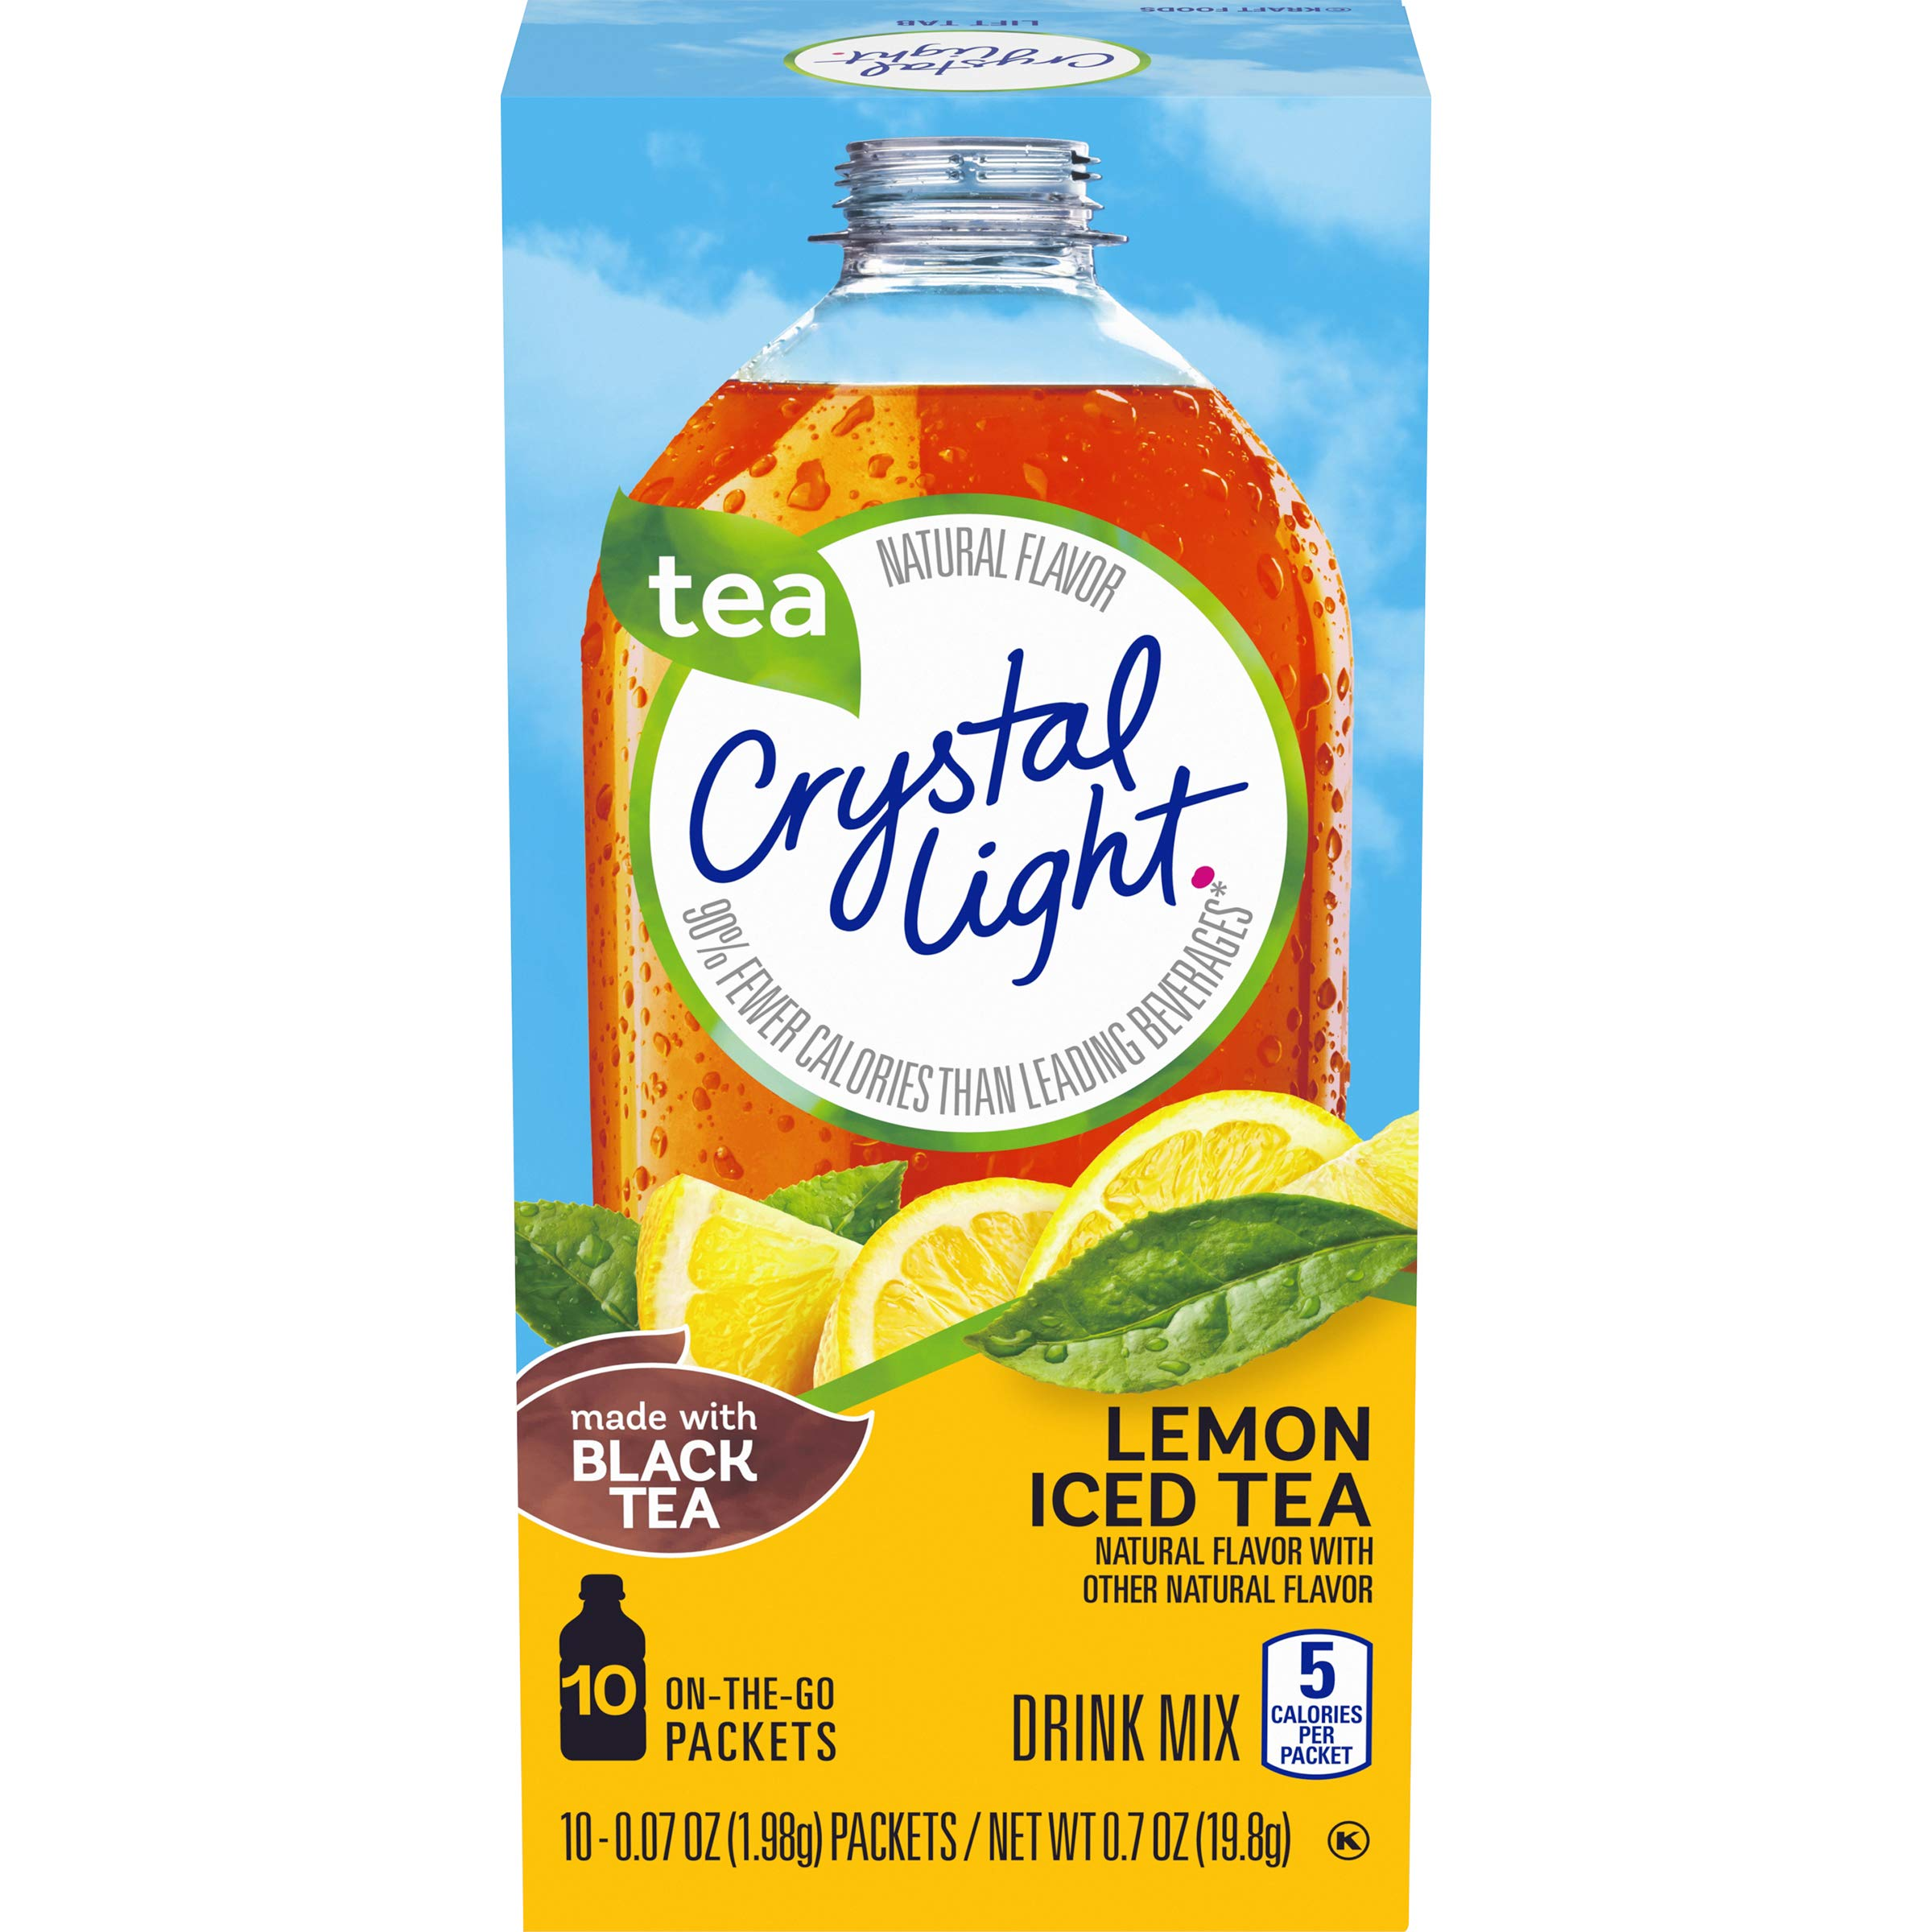 Crystal Light Drink Mix, Lemon Iced Tea, On The Go Packets, 10 Count (Pack of 6 Boxes) by Crystal Light